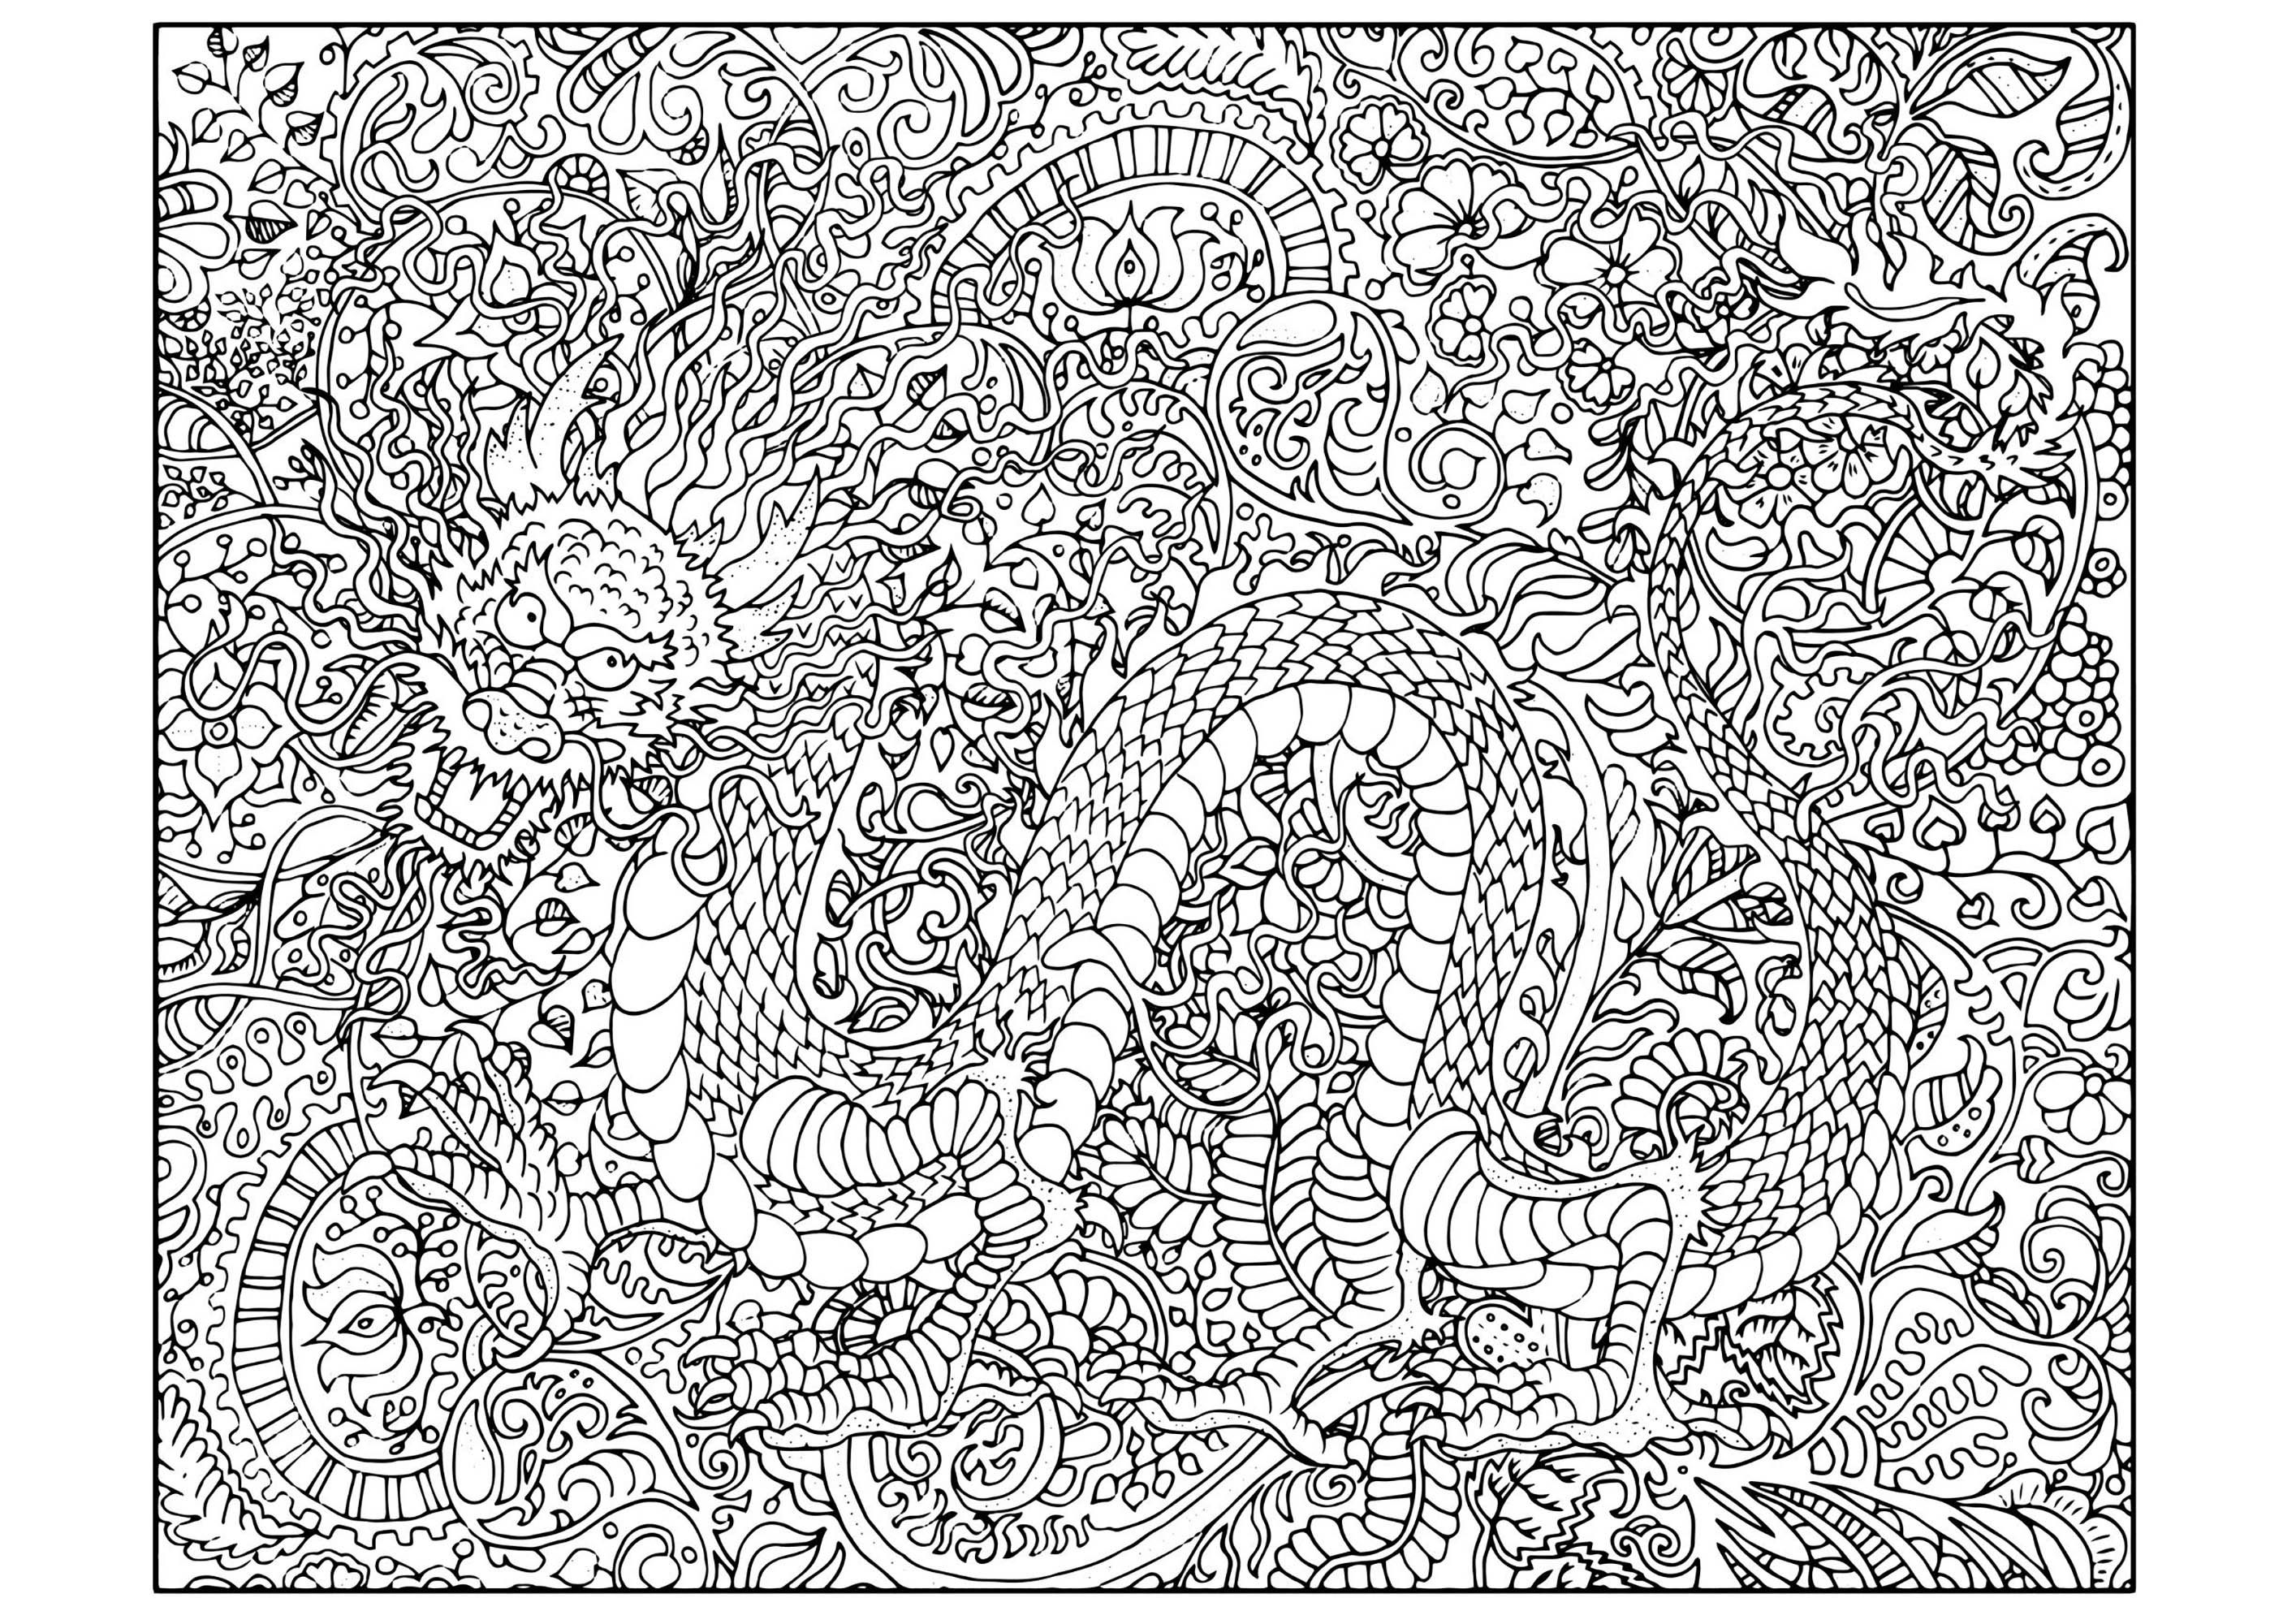 Full Dragon In A Complex Coloring Page With Background Full Of Details And Pa Dragon Coloring Page Christmas Coloring Pages Printable Christmas Coloring Pages